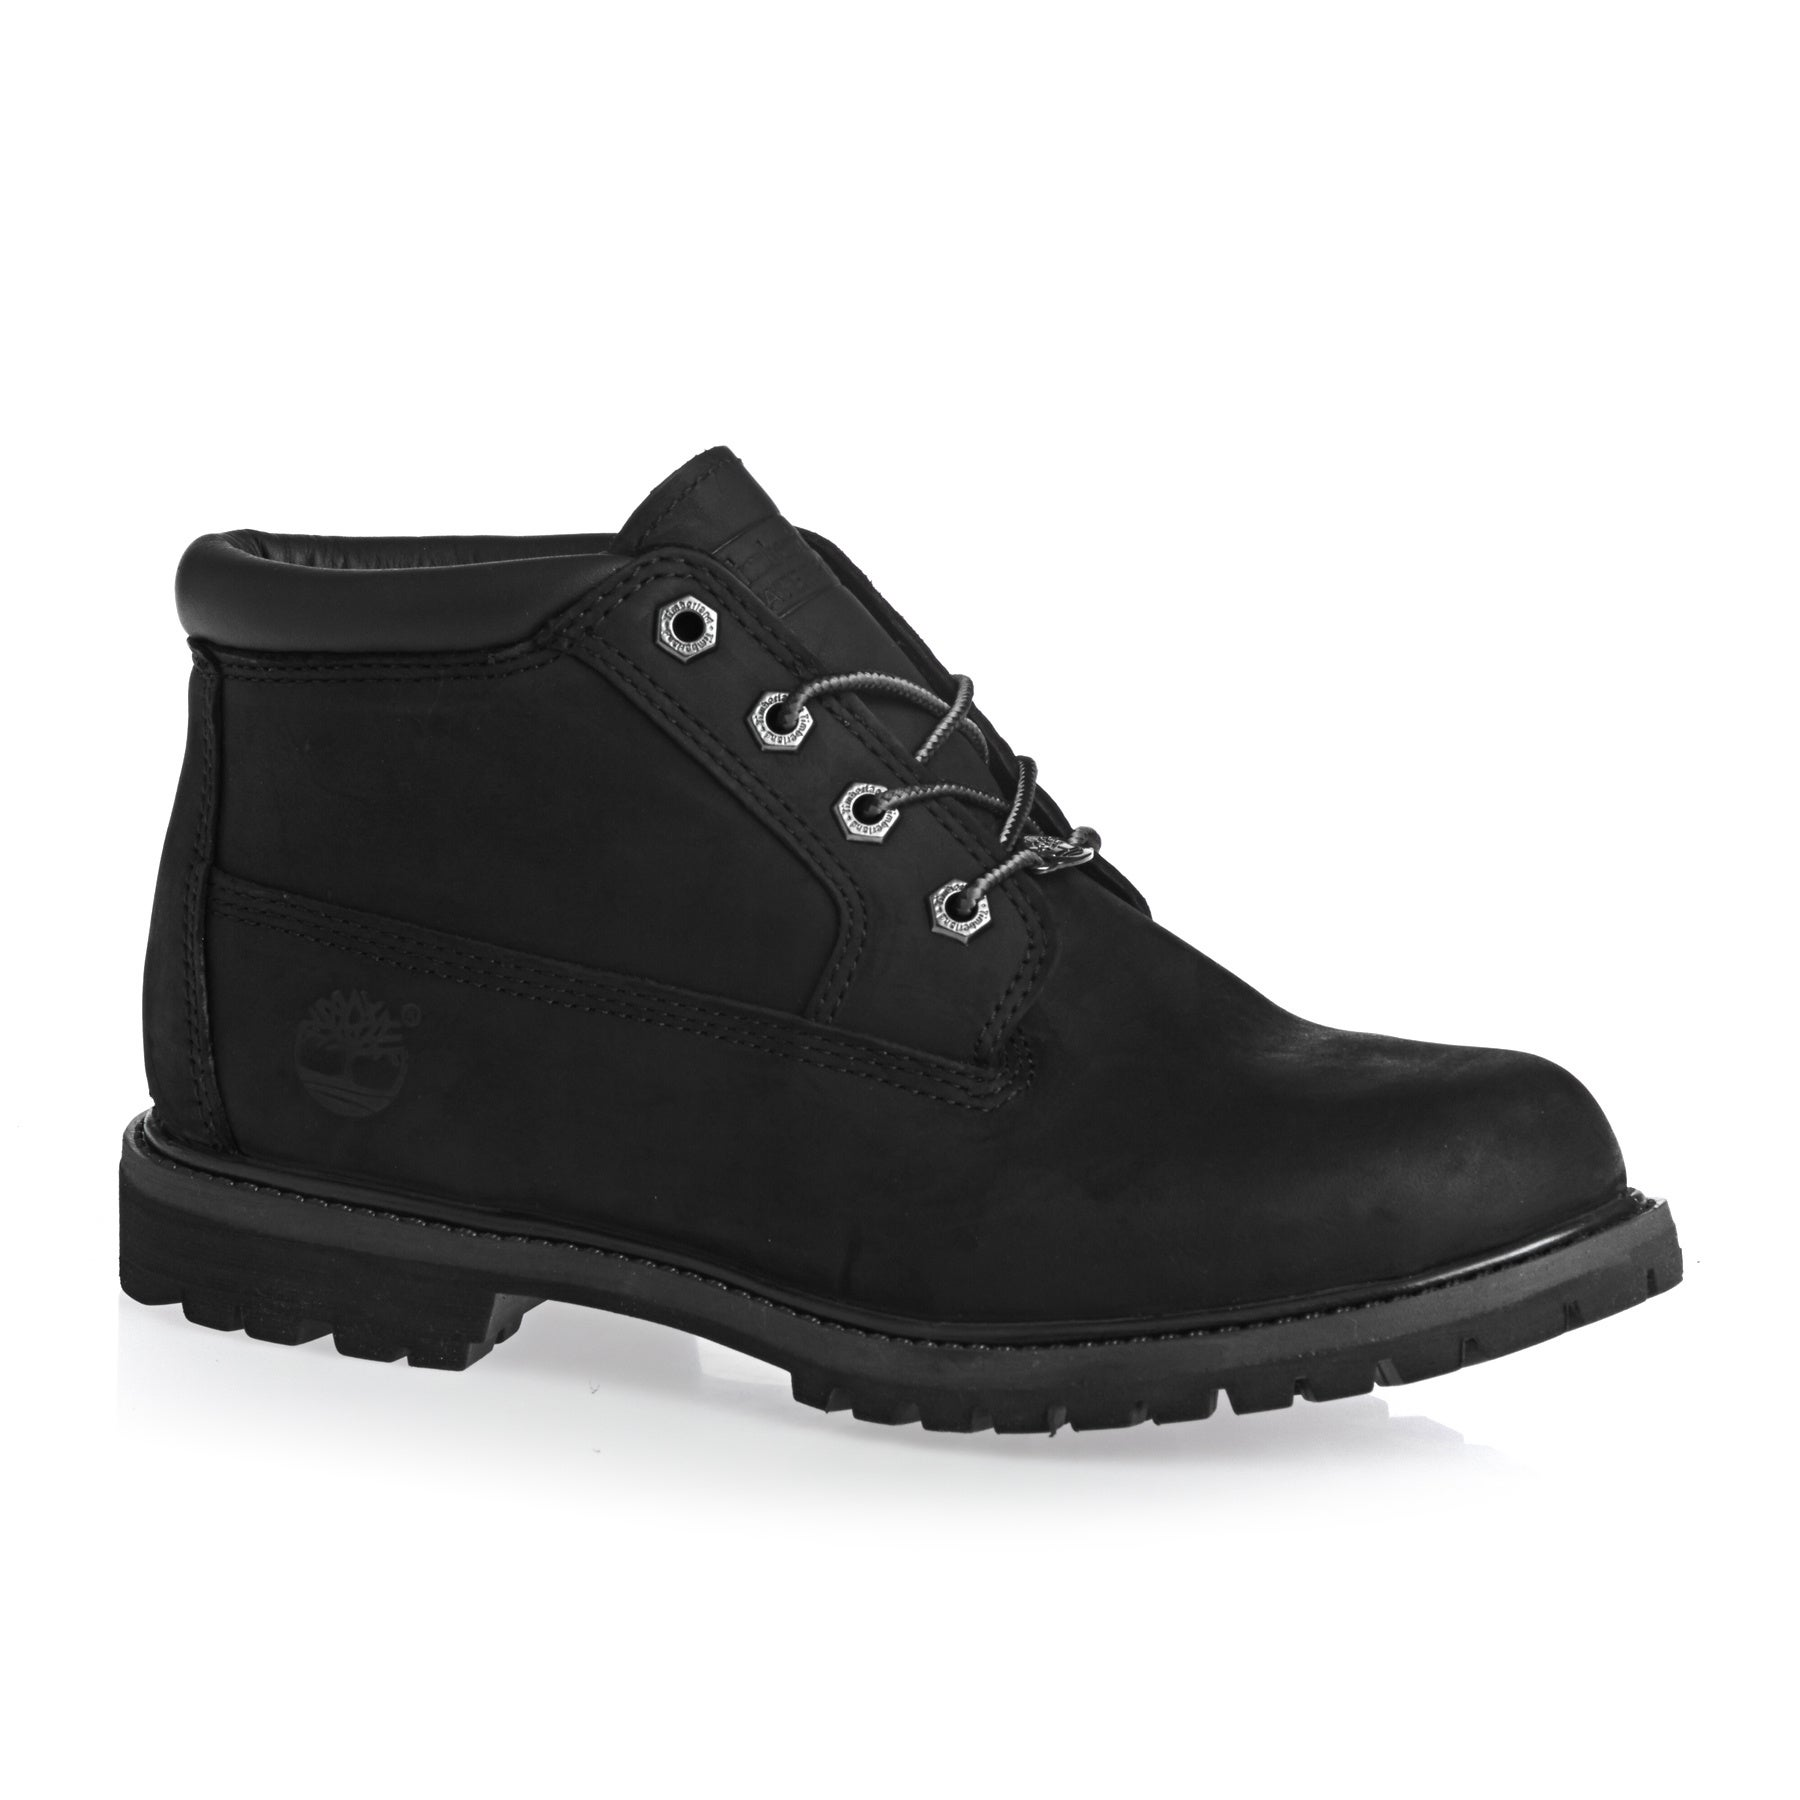 aeb4446767b0 Timberland Womens Nellie Chukka Double Womens Boots available from ...